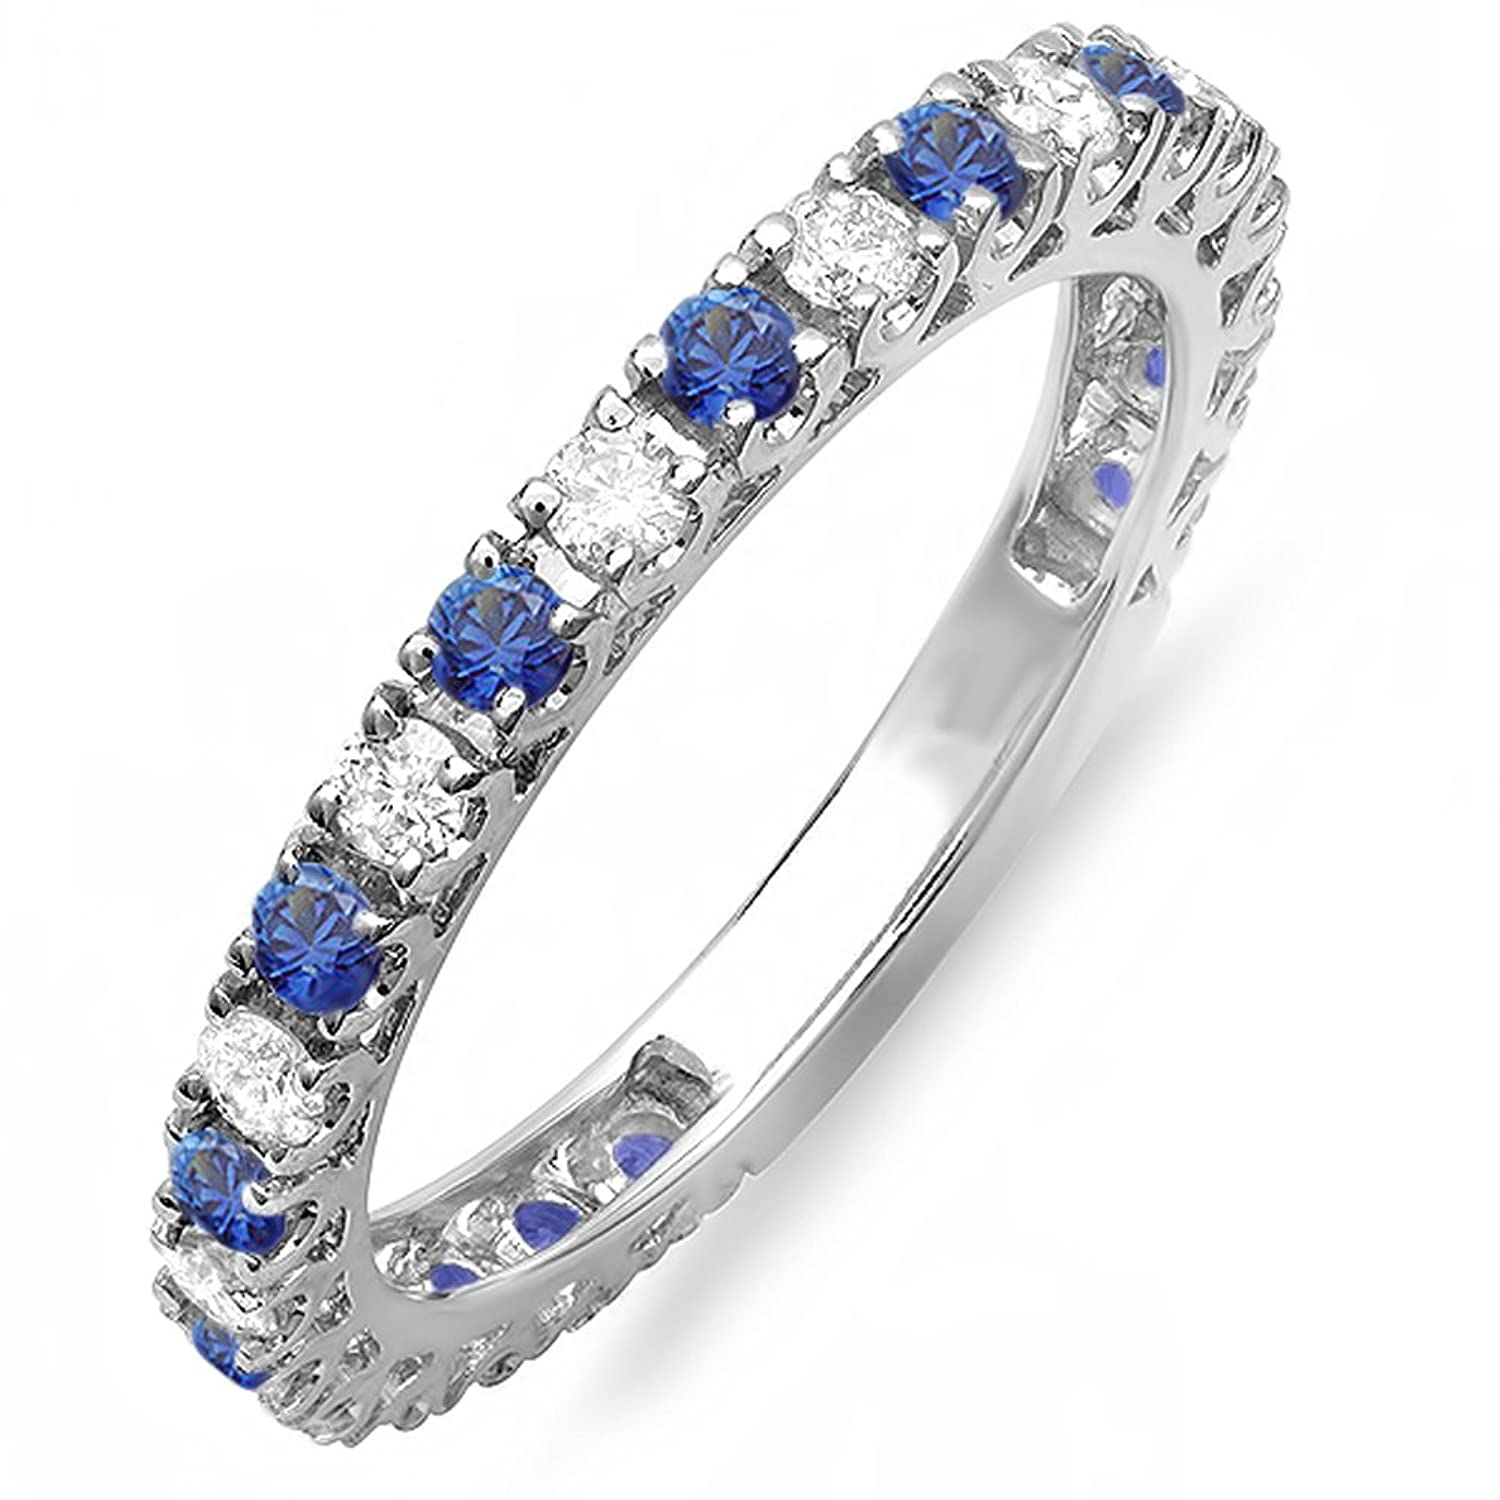 plated eternity sterling anniversary band gold in white ring p bands silver over sapphire